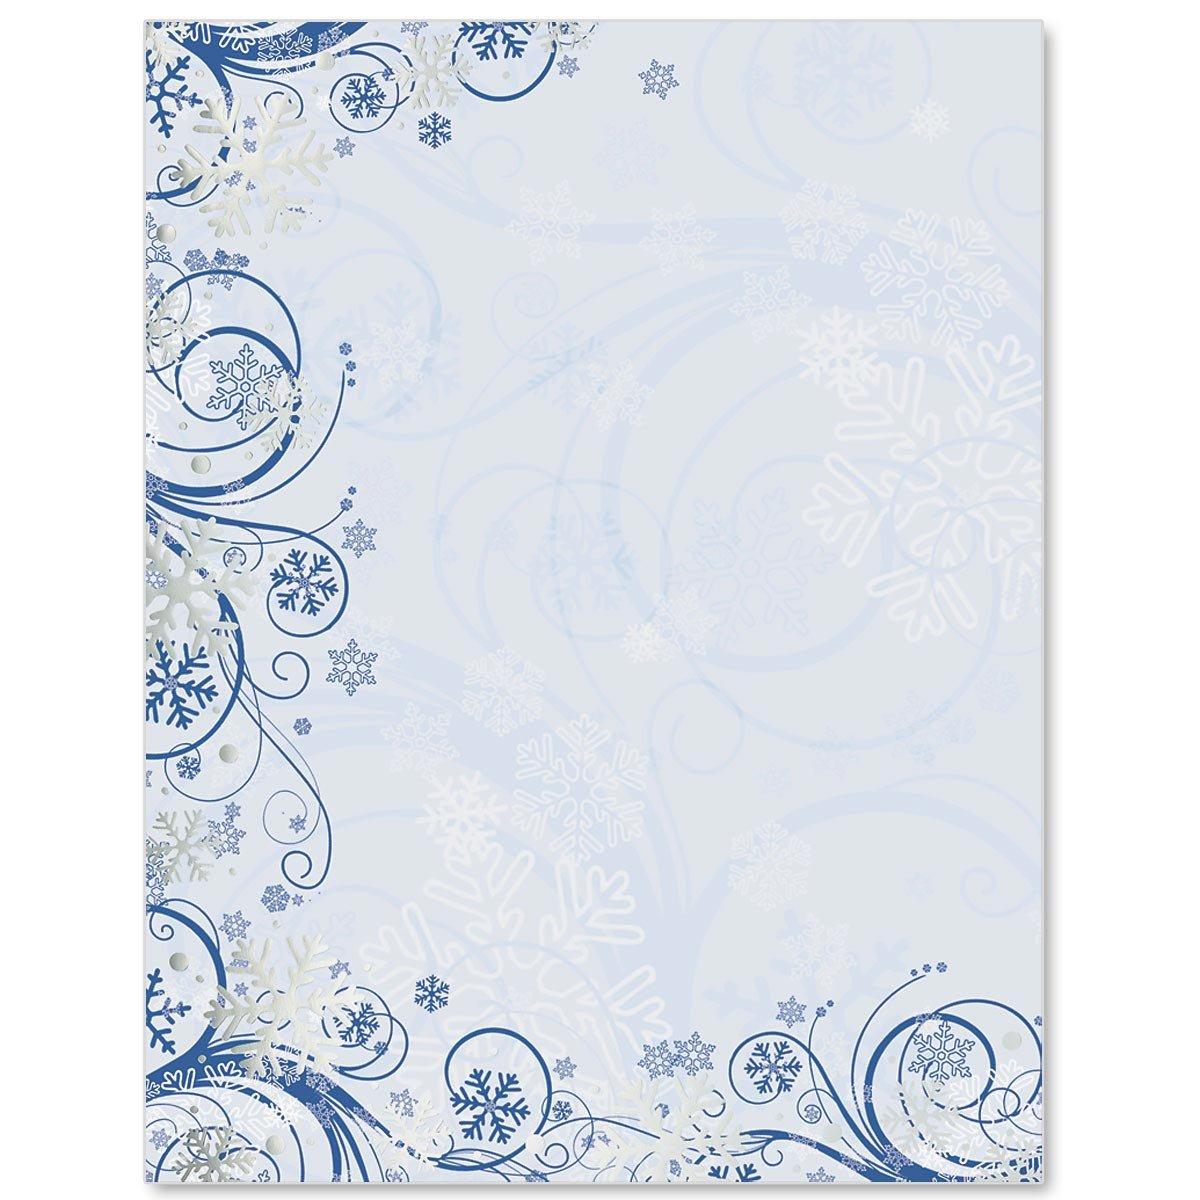 Silver Foil Winter Waltz Border Papers, 8.5 x 11, 100 Count